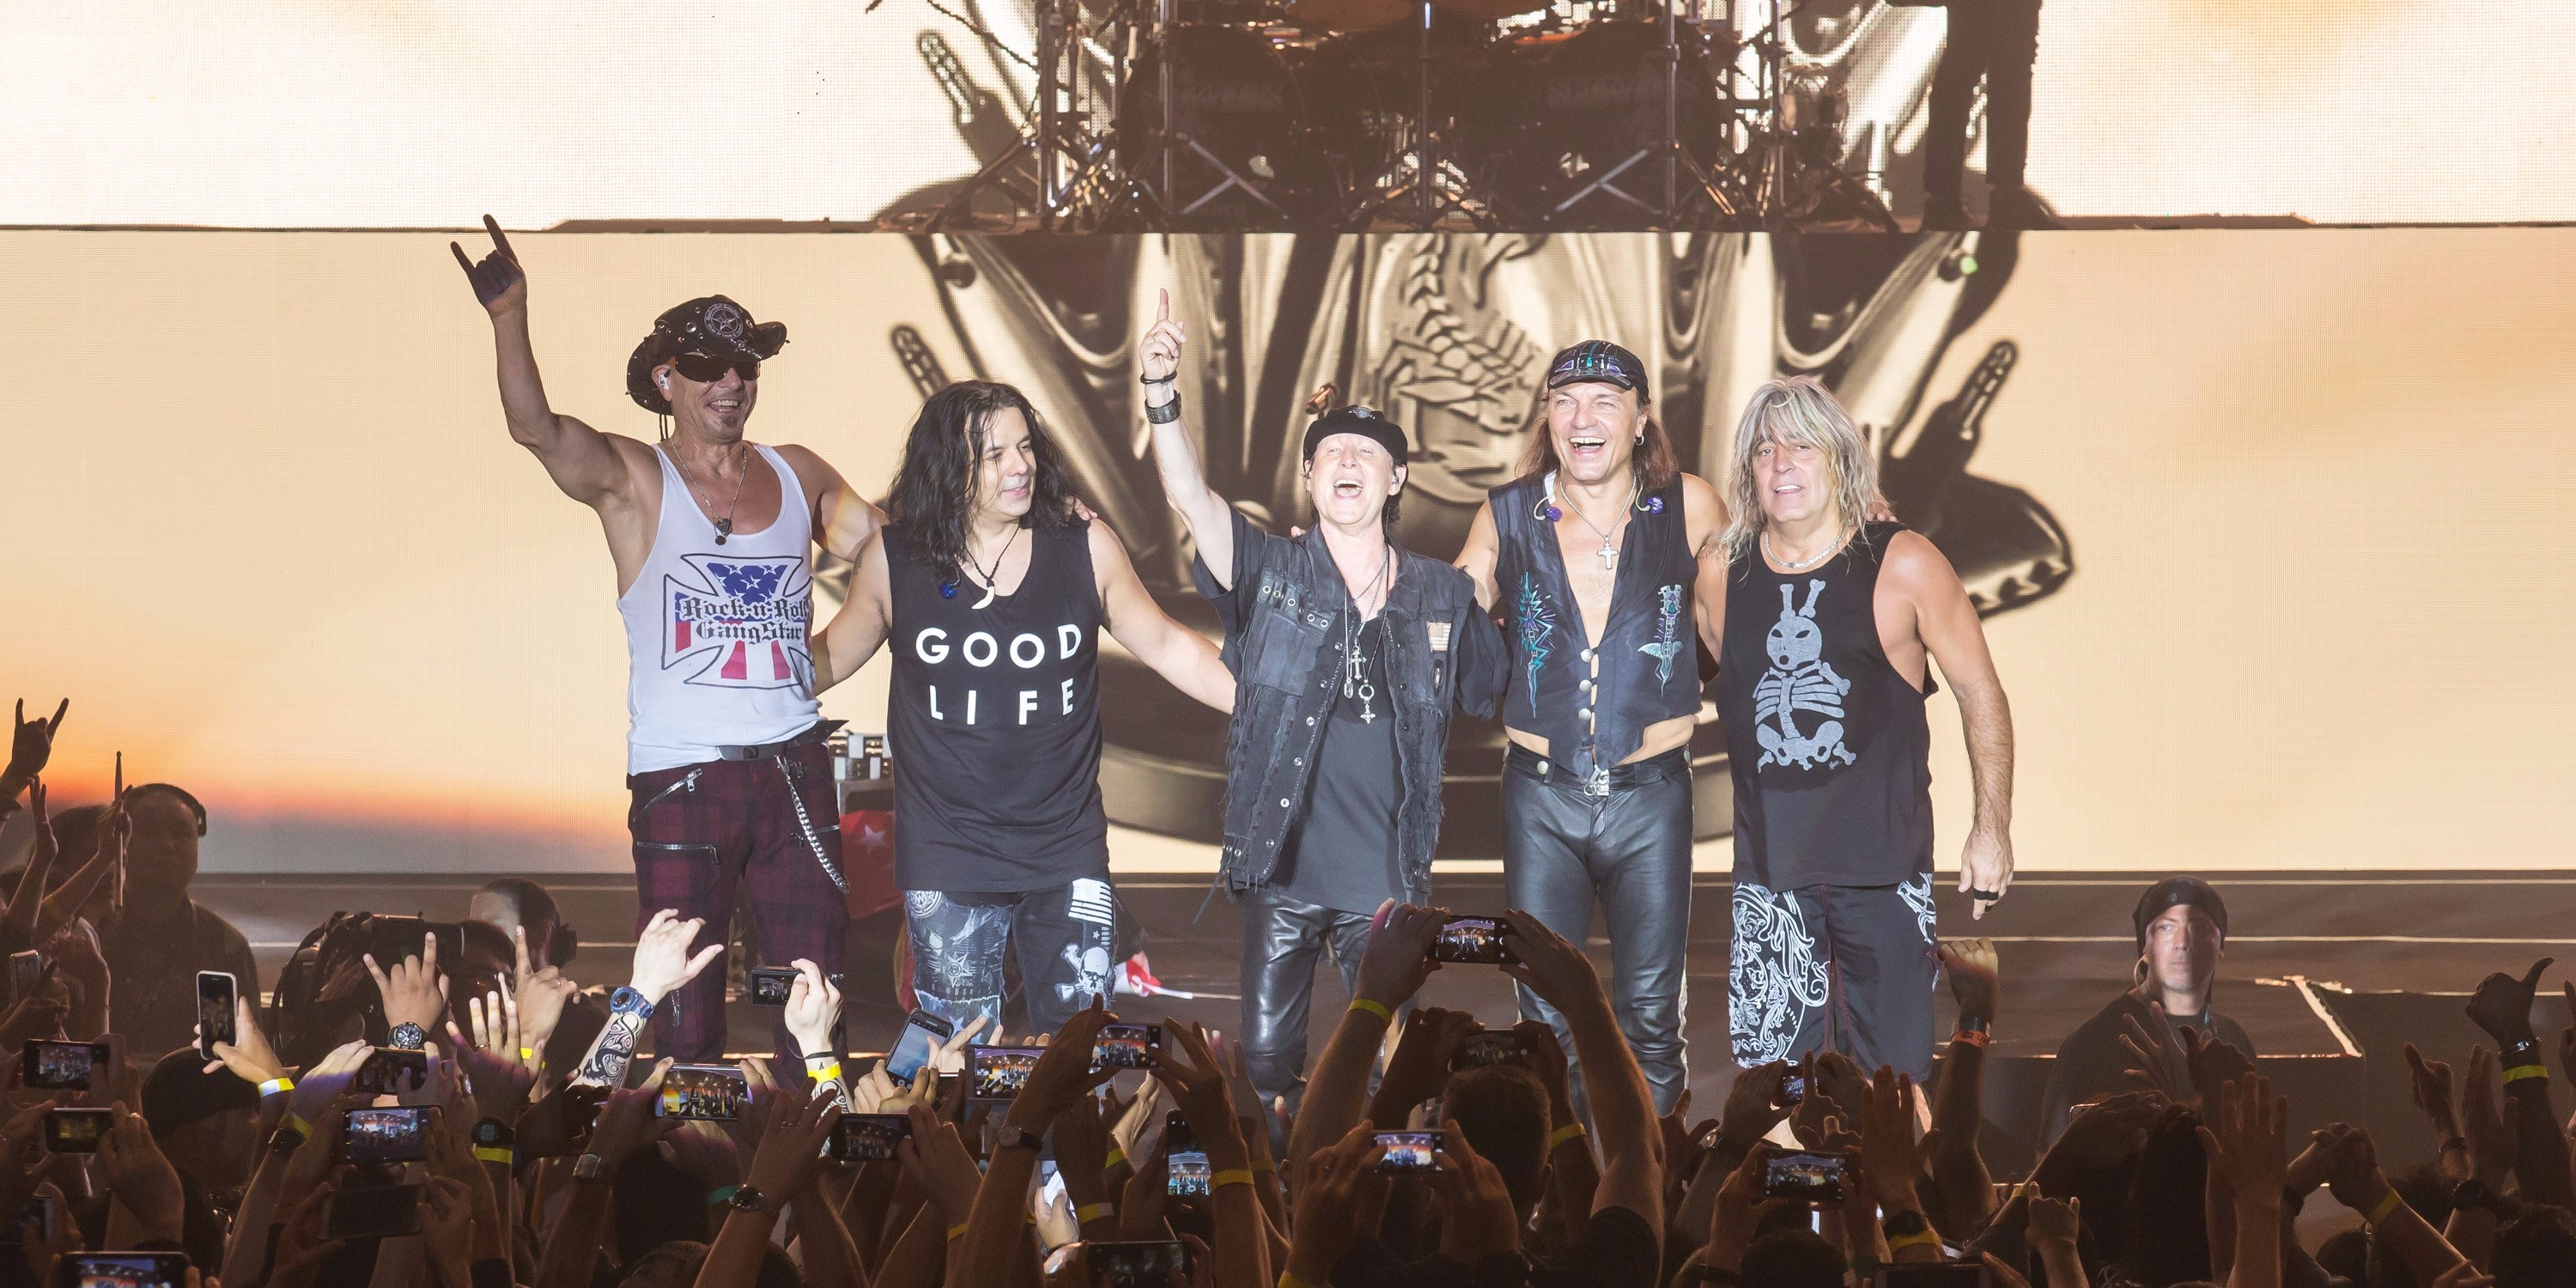 GIG REPORT: Even after 50 years, we're still loving Scorpions